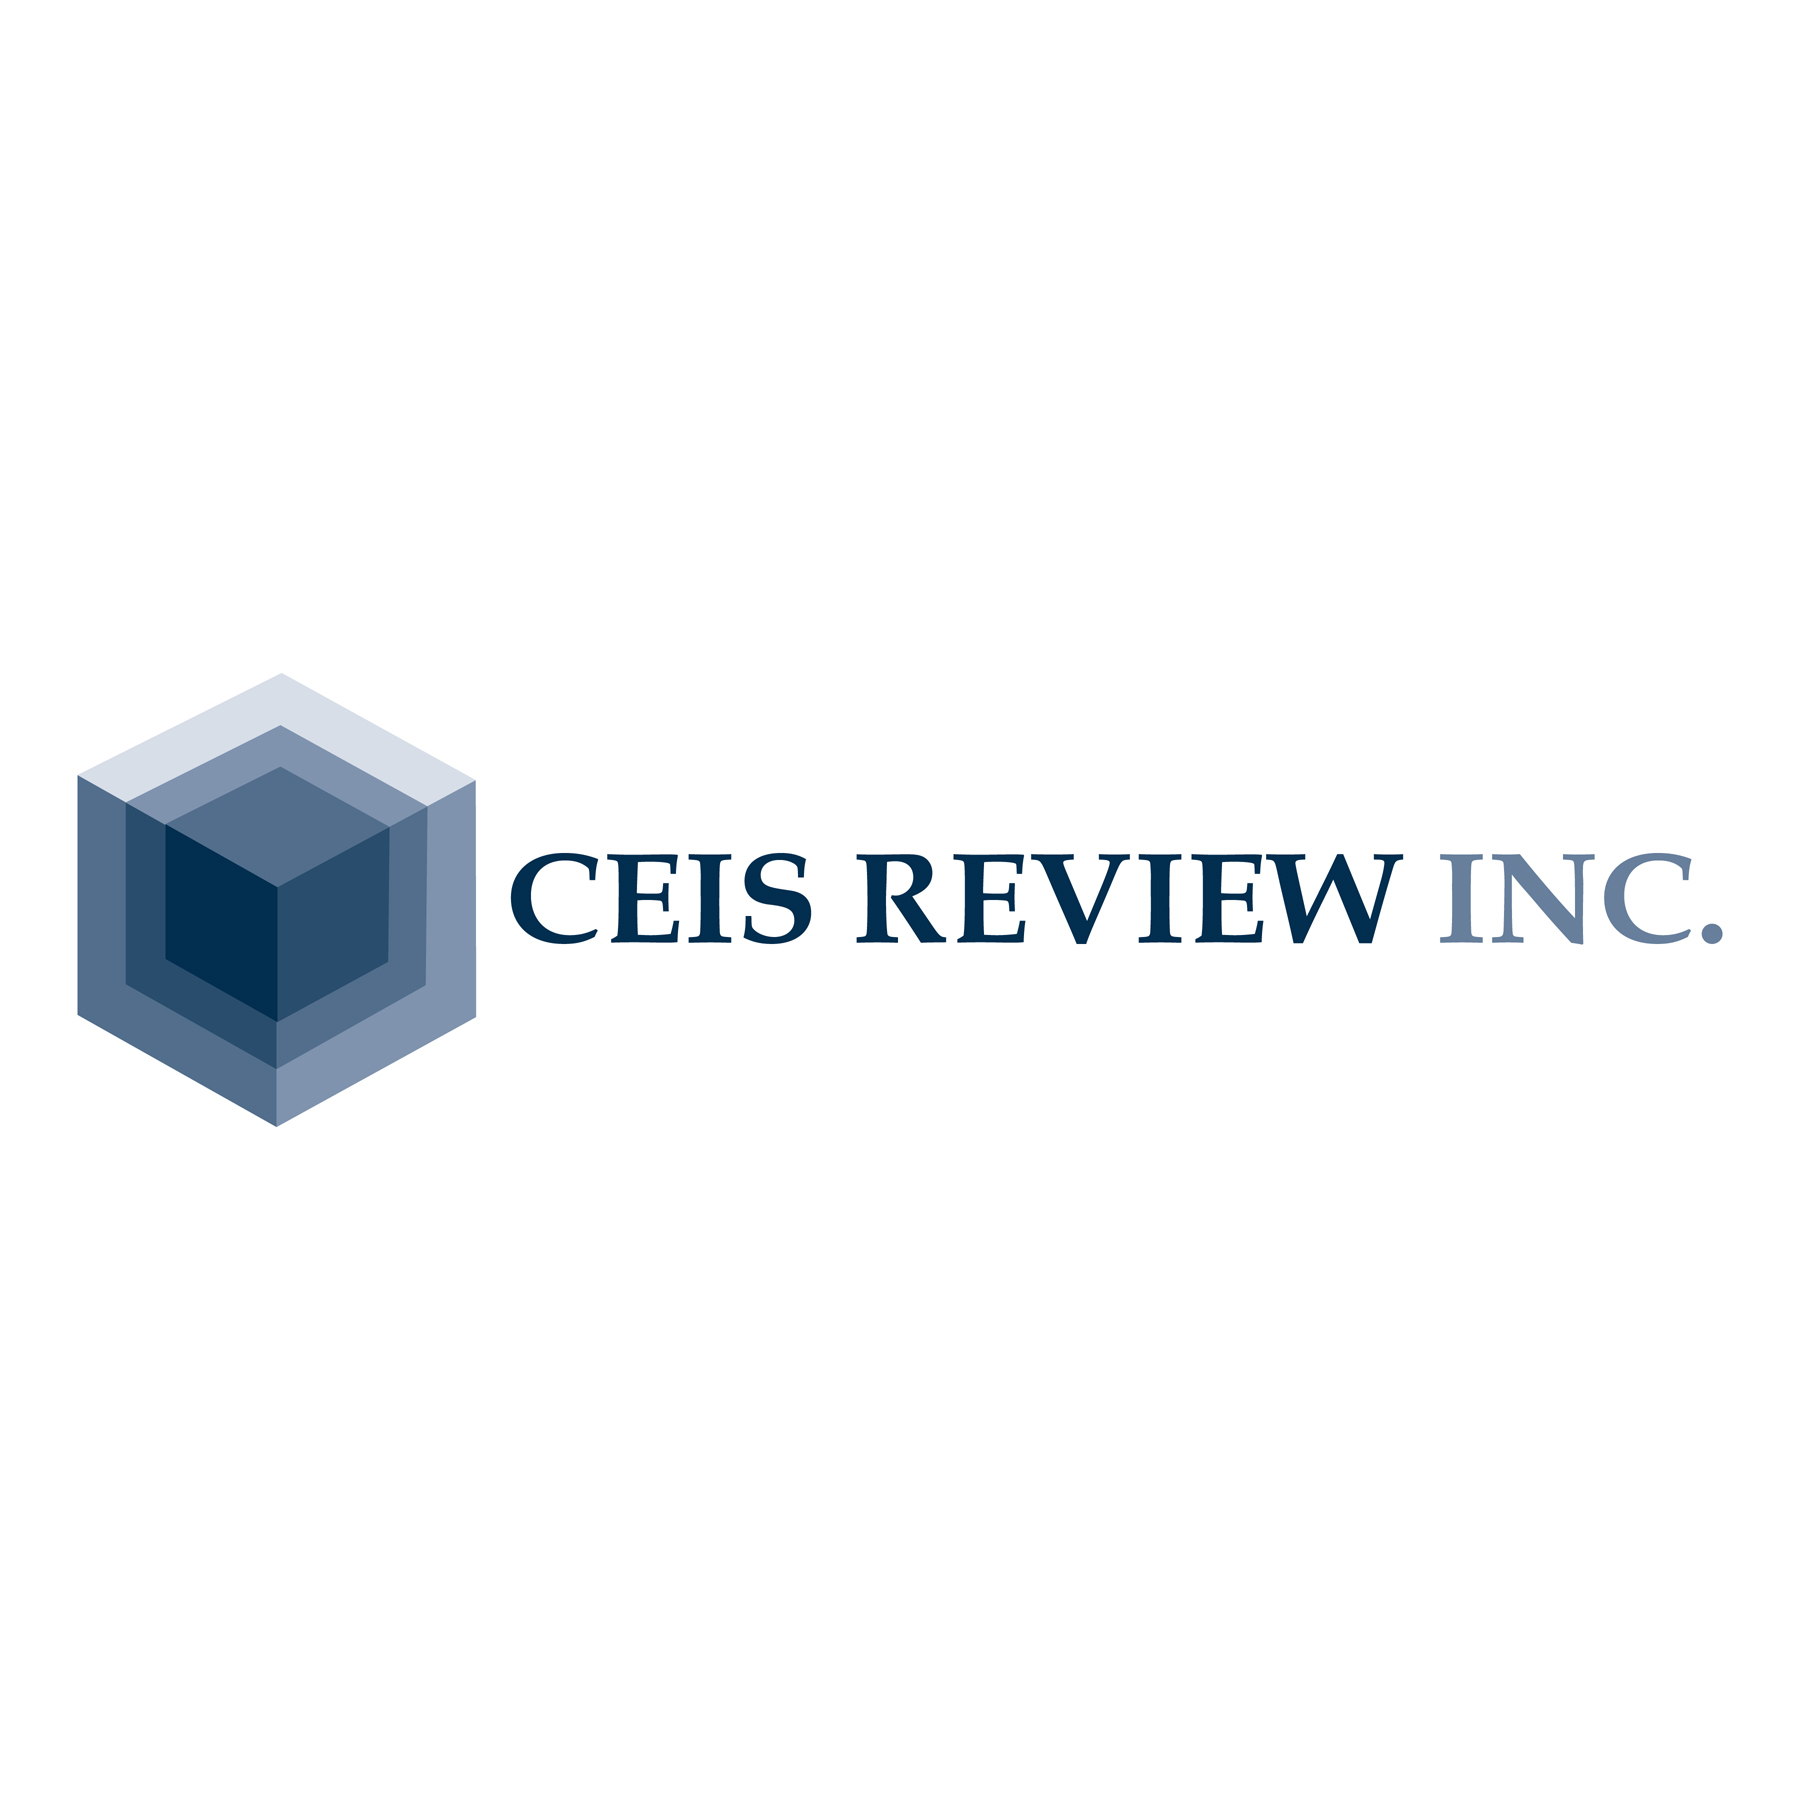 CEIS Review Inc - New York